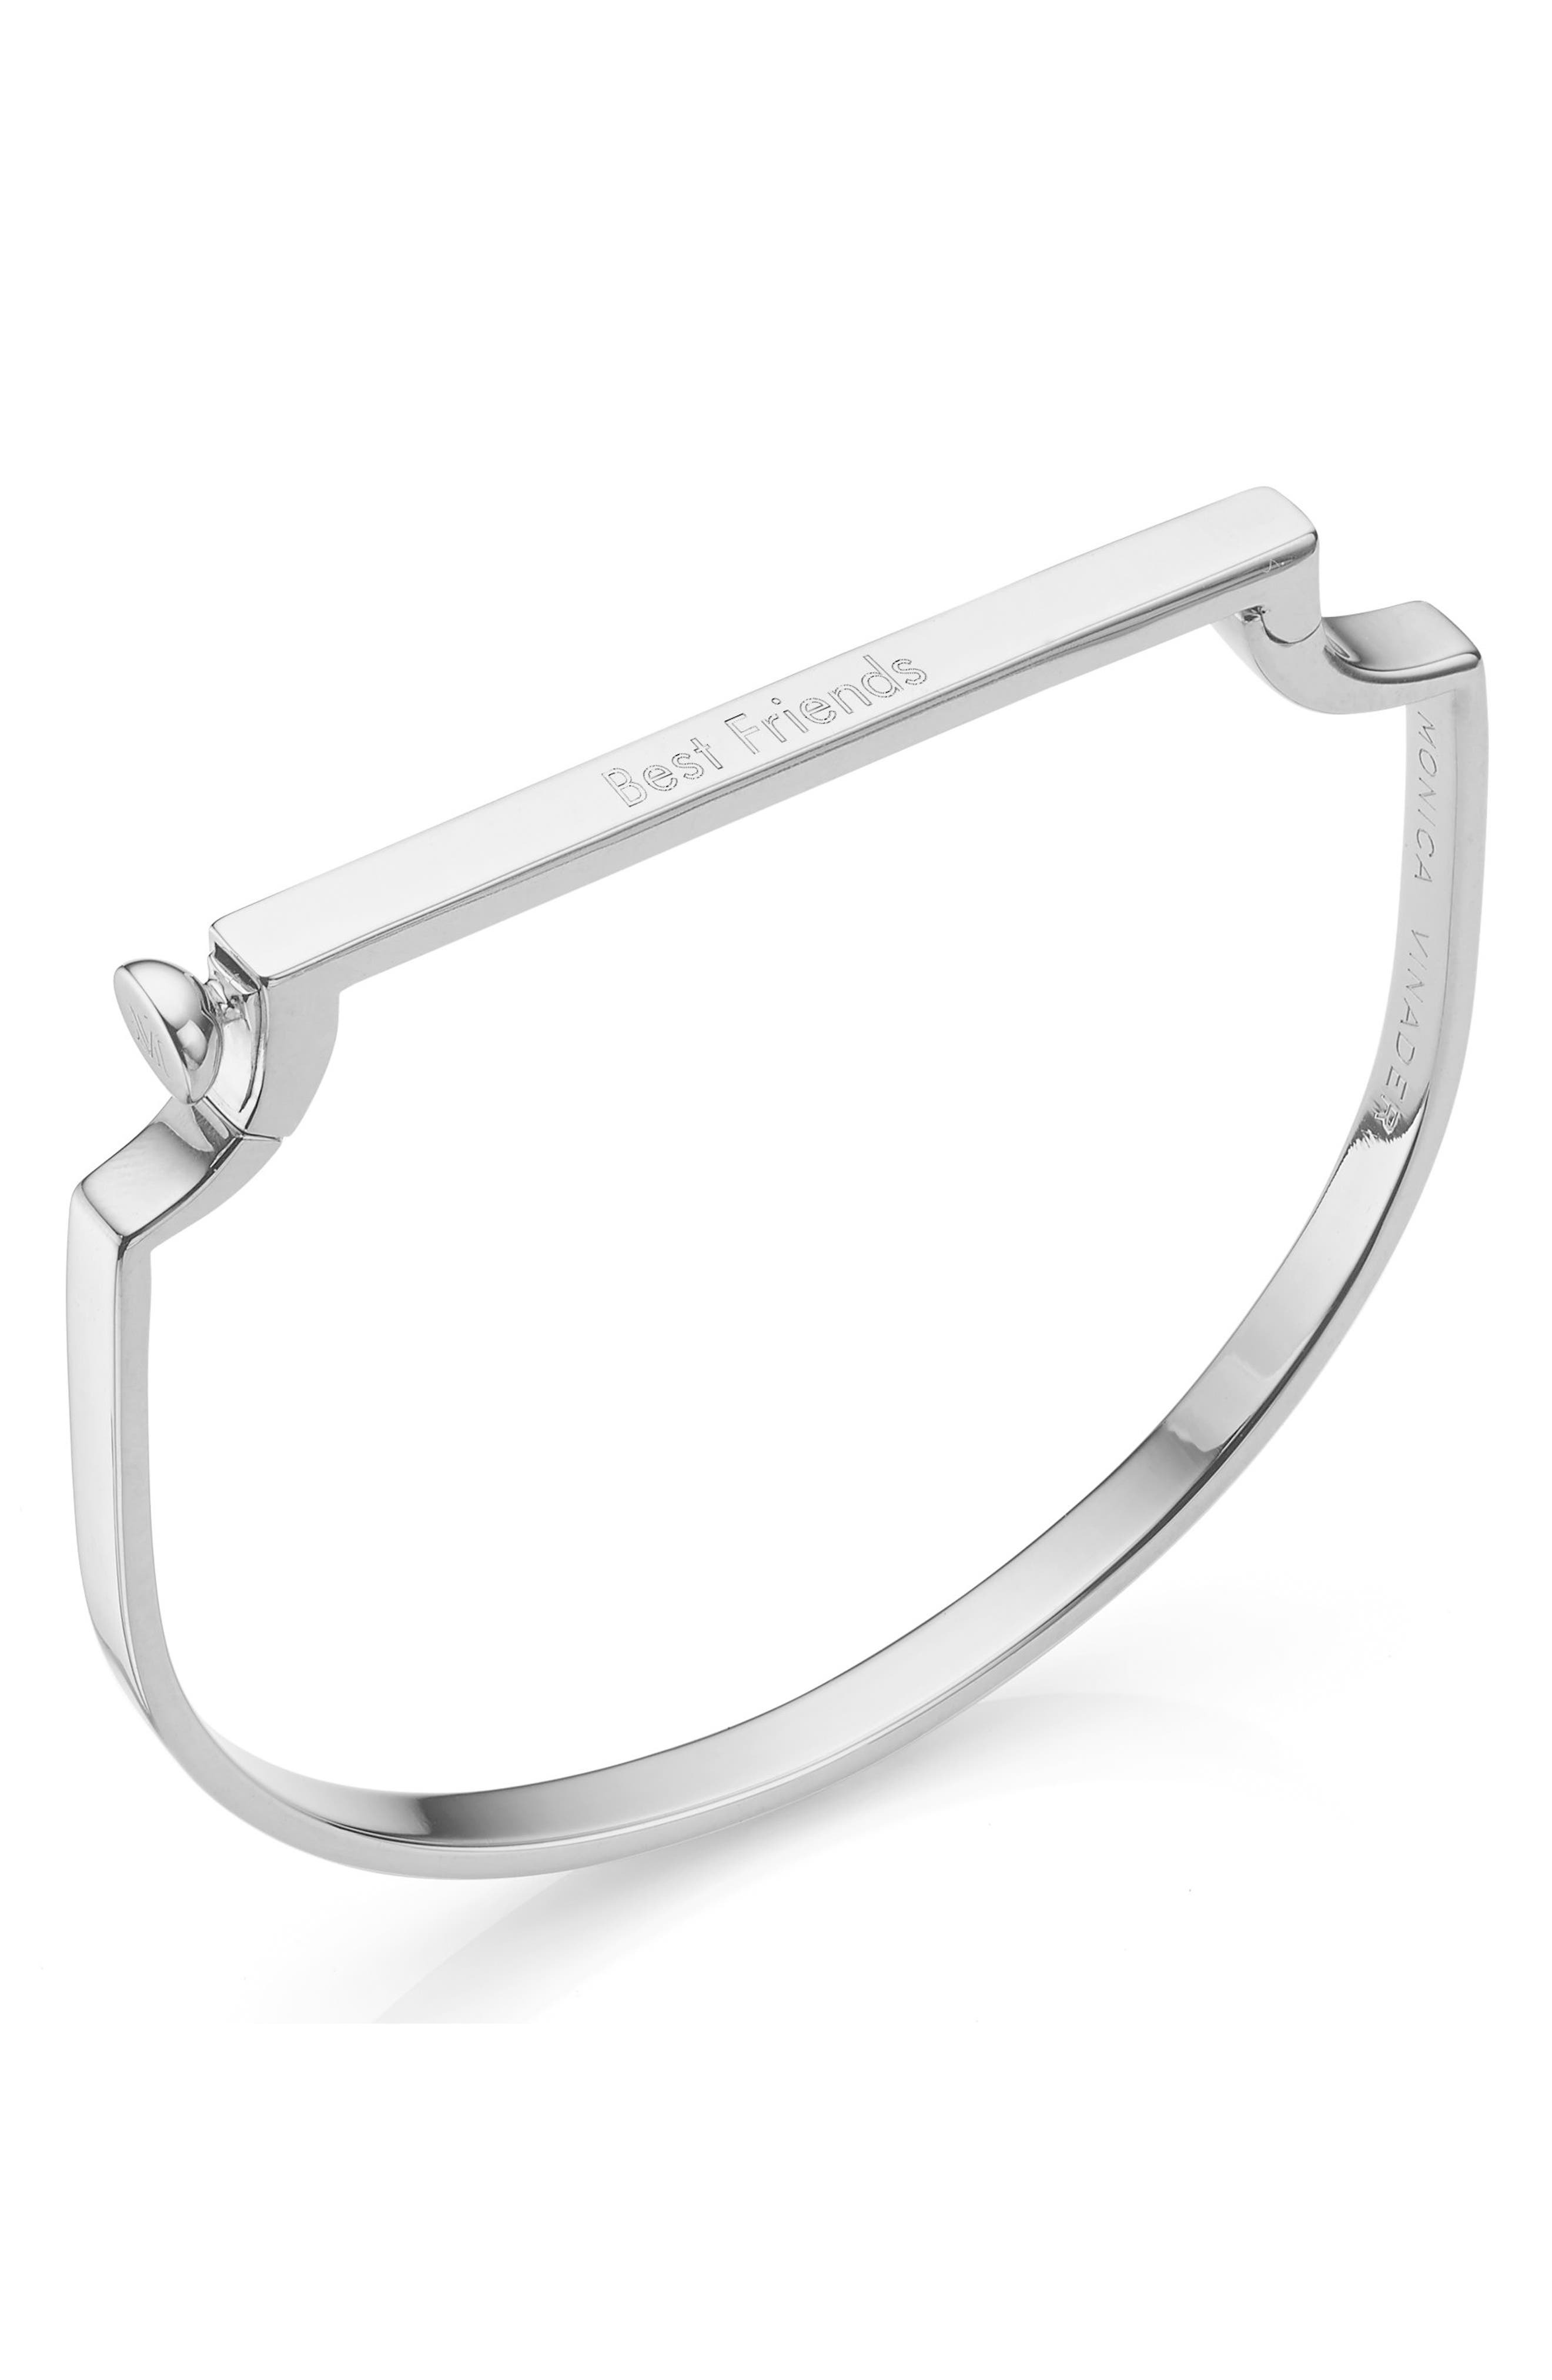 MONICA VINADER,                             Engravable Signature Thin Bangle Bracelet,                             Alternate thumbnail 4, color,                             SILVER